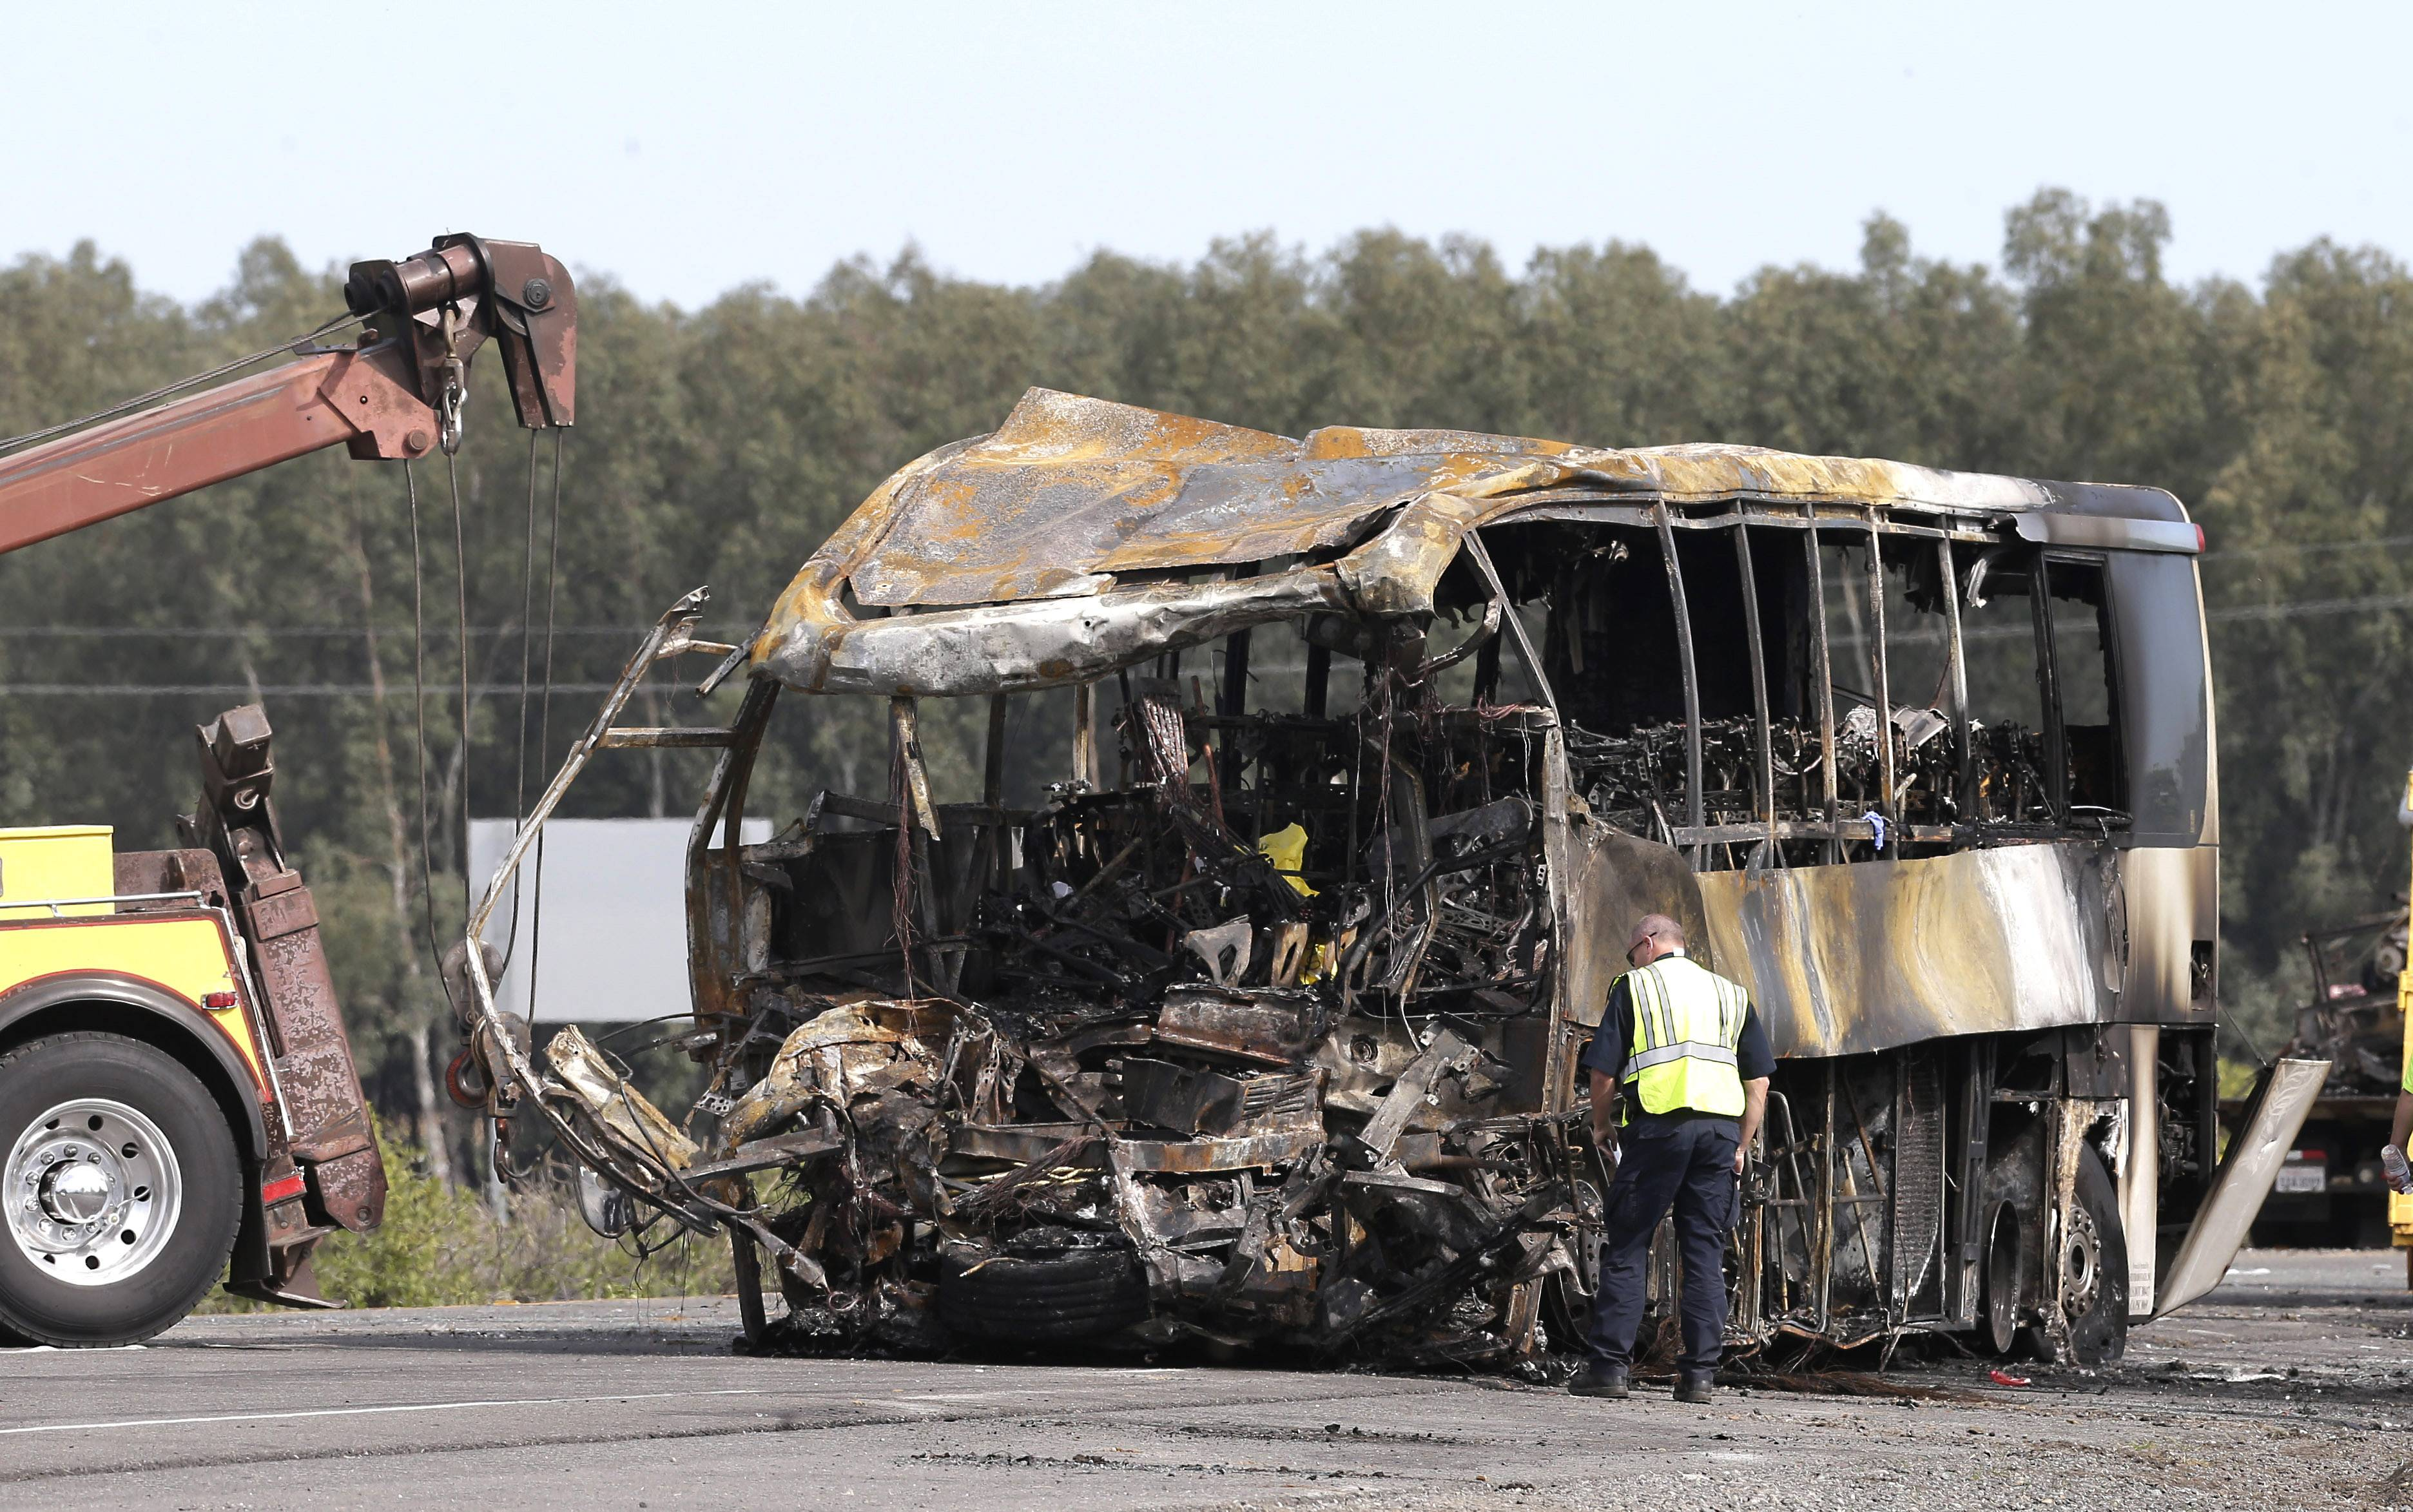 A California Highway Patrol Officer looks over the burned out remains of a tour bus, Friday, April 11, 2014, that collided with a FedEX truck on Interstate 5 Thursday in Orland, Calif.  At least ten people were killed and dozens injured in the fiery crash, Thursday, between the truck and a bus carrying high school students on a visit to a Northern California College.